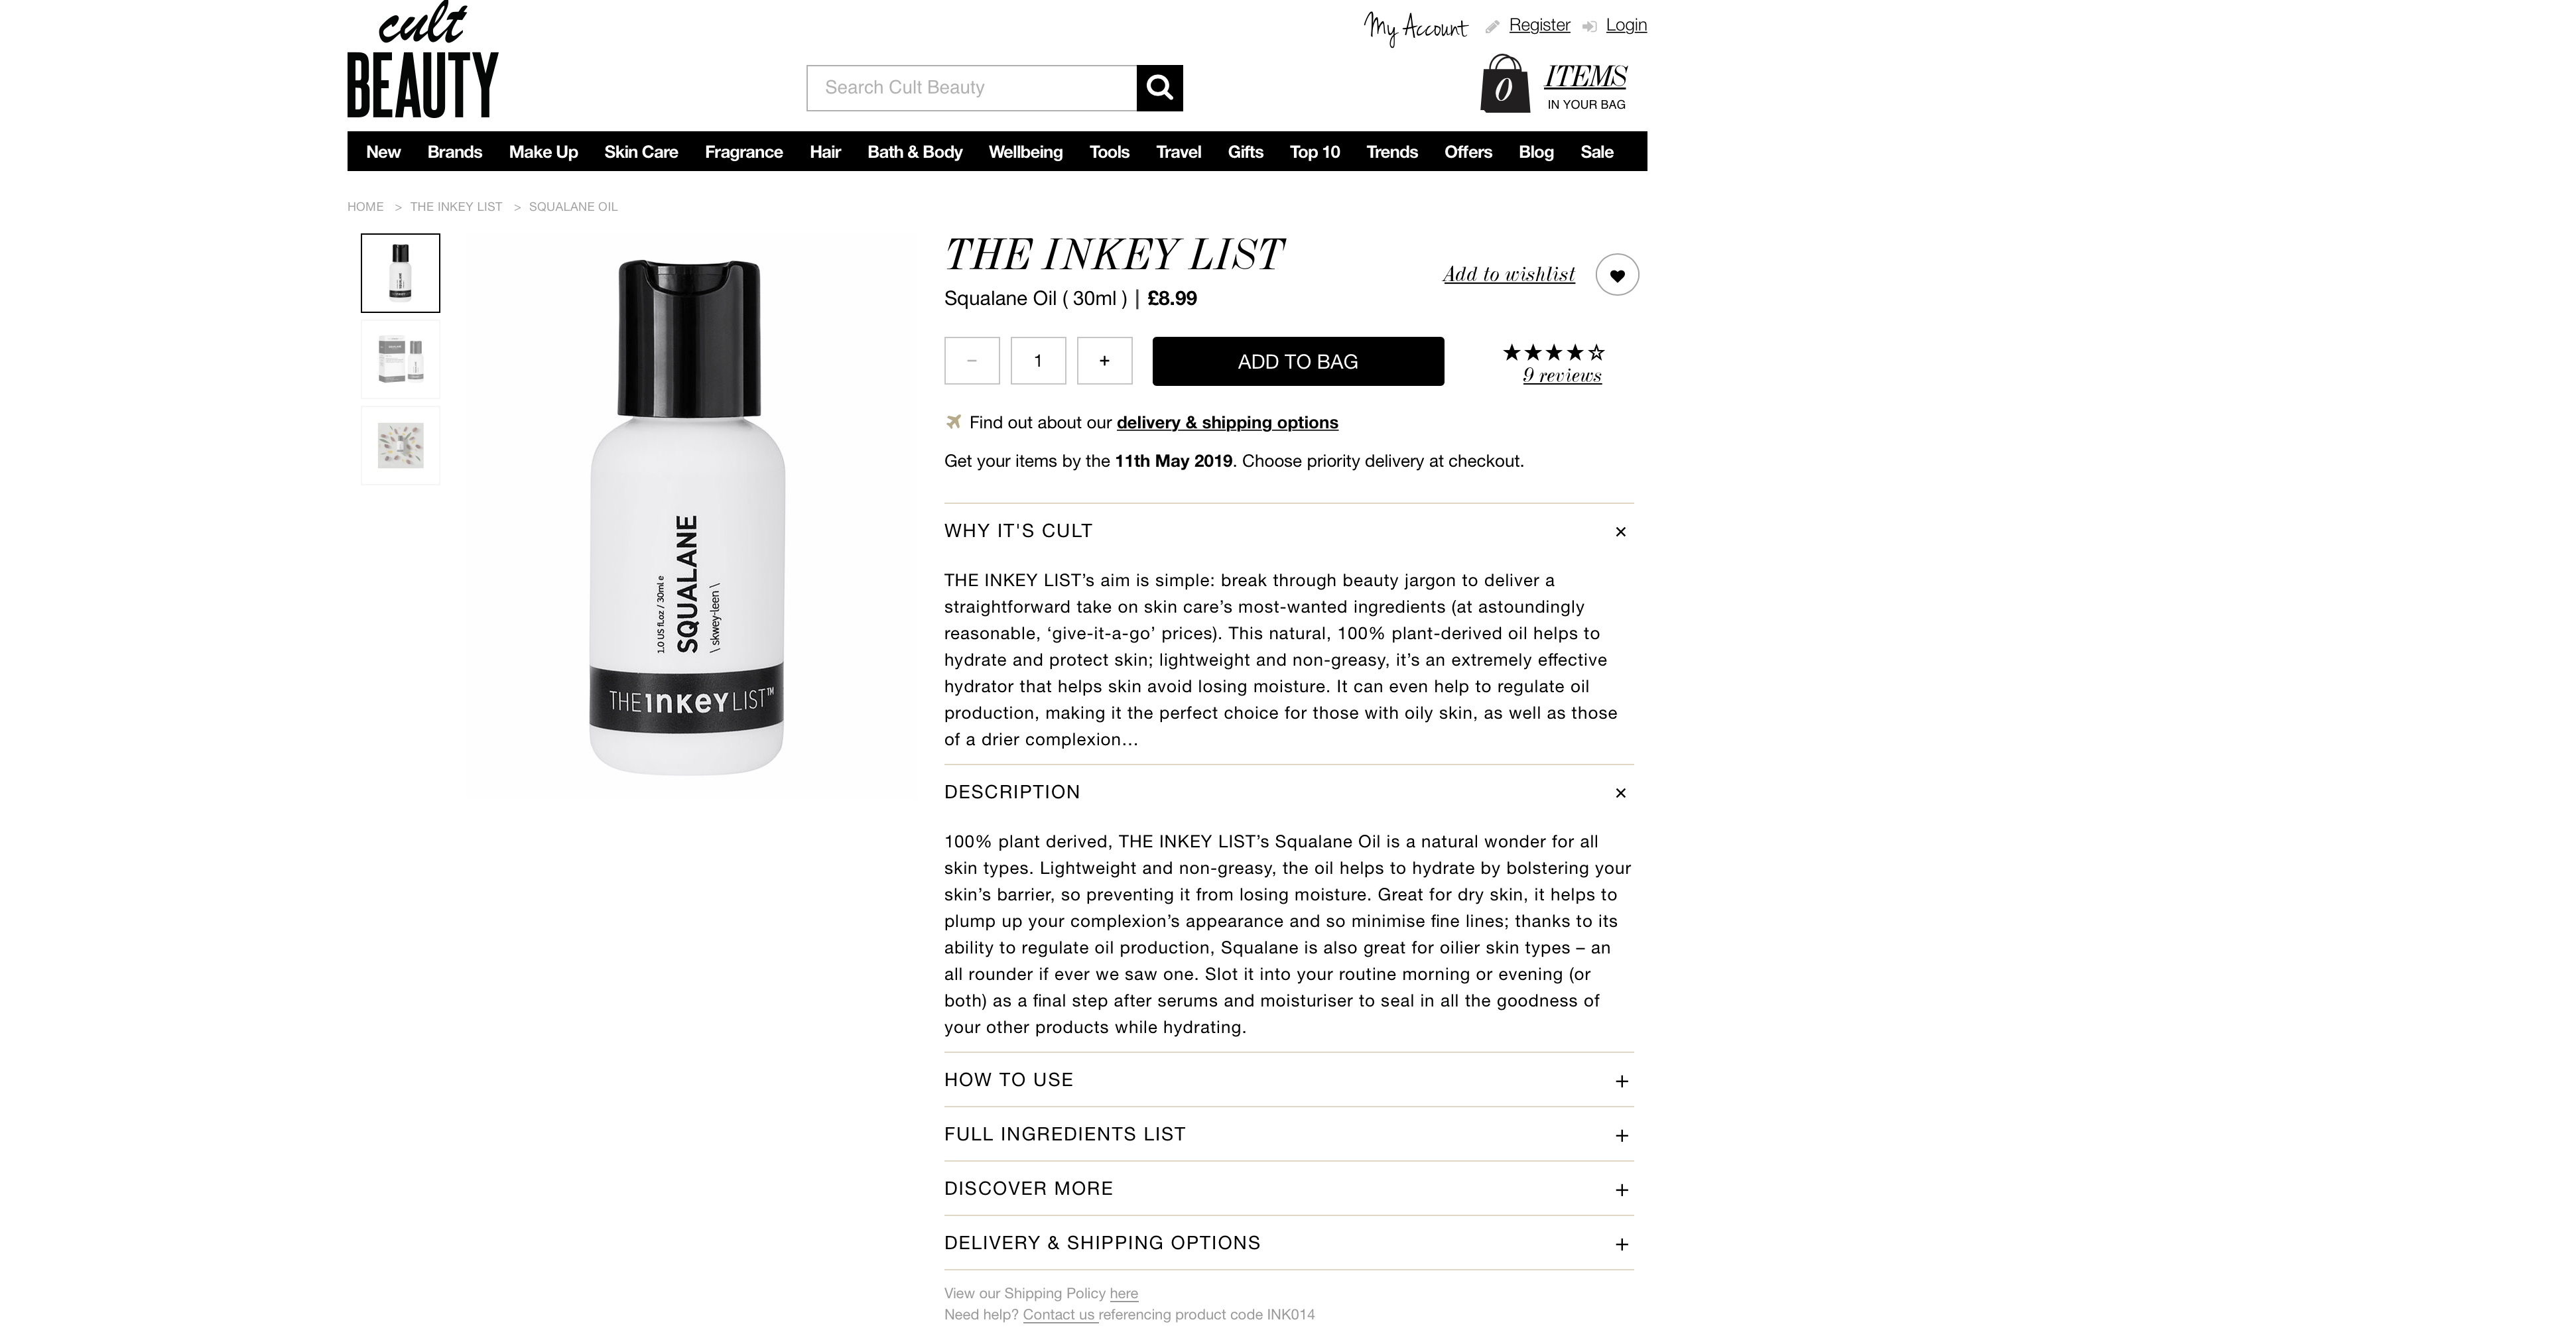 The Inkey List Squalane Oil